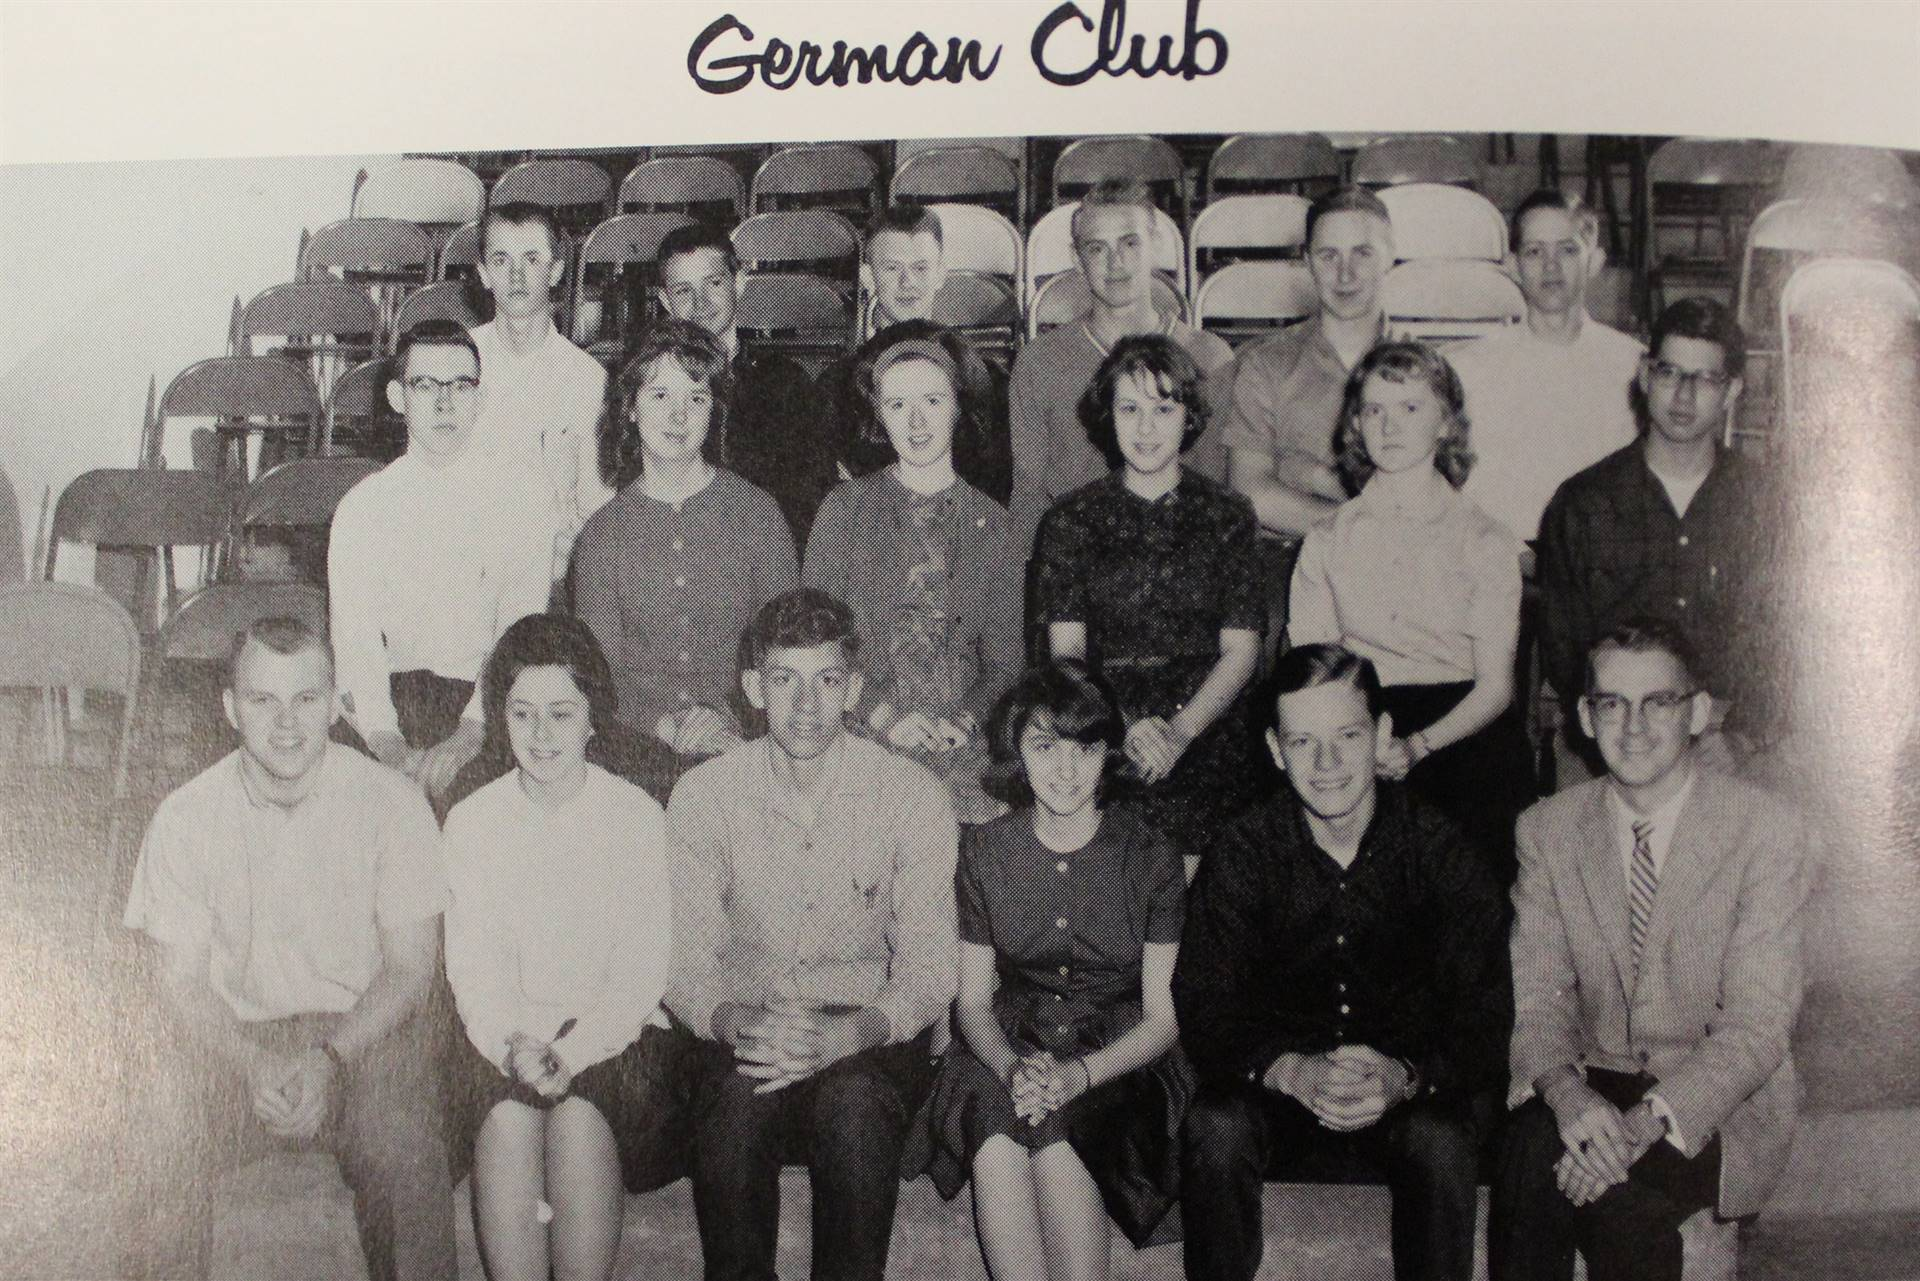 1964 German Club